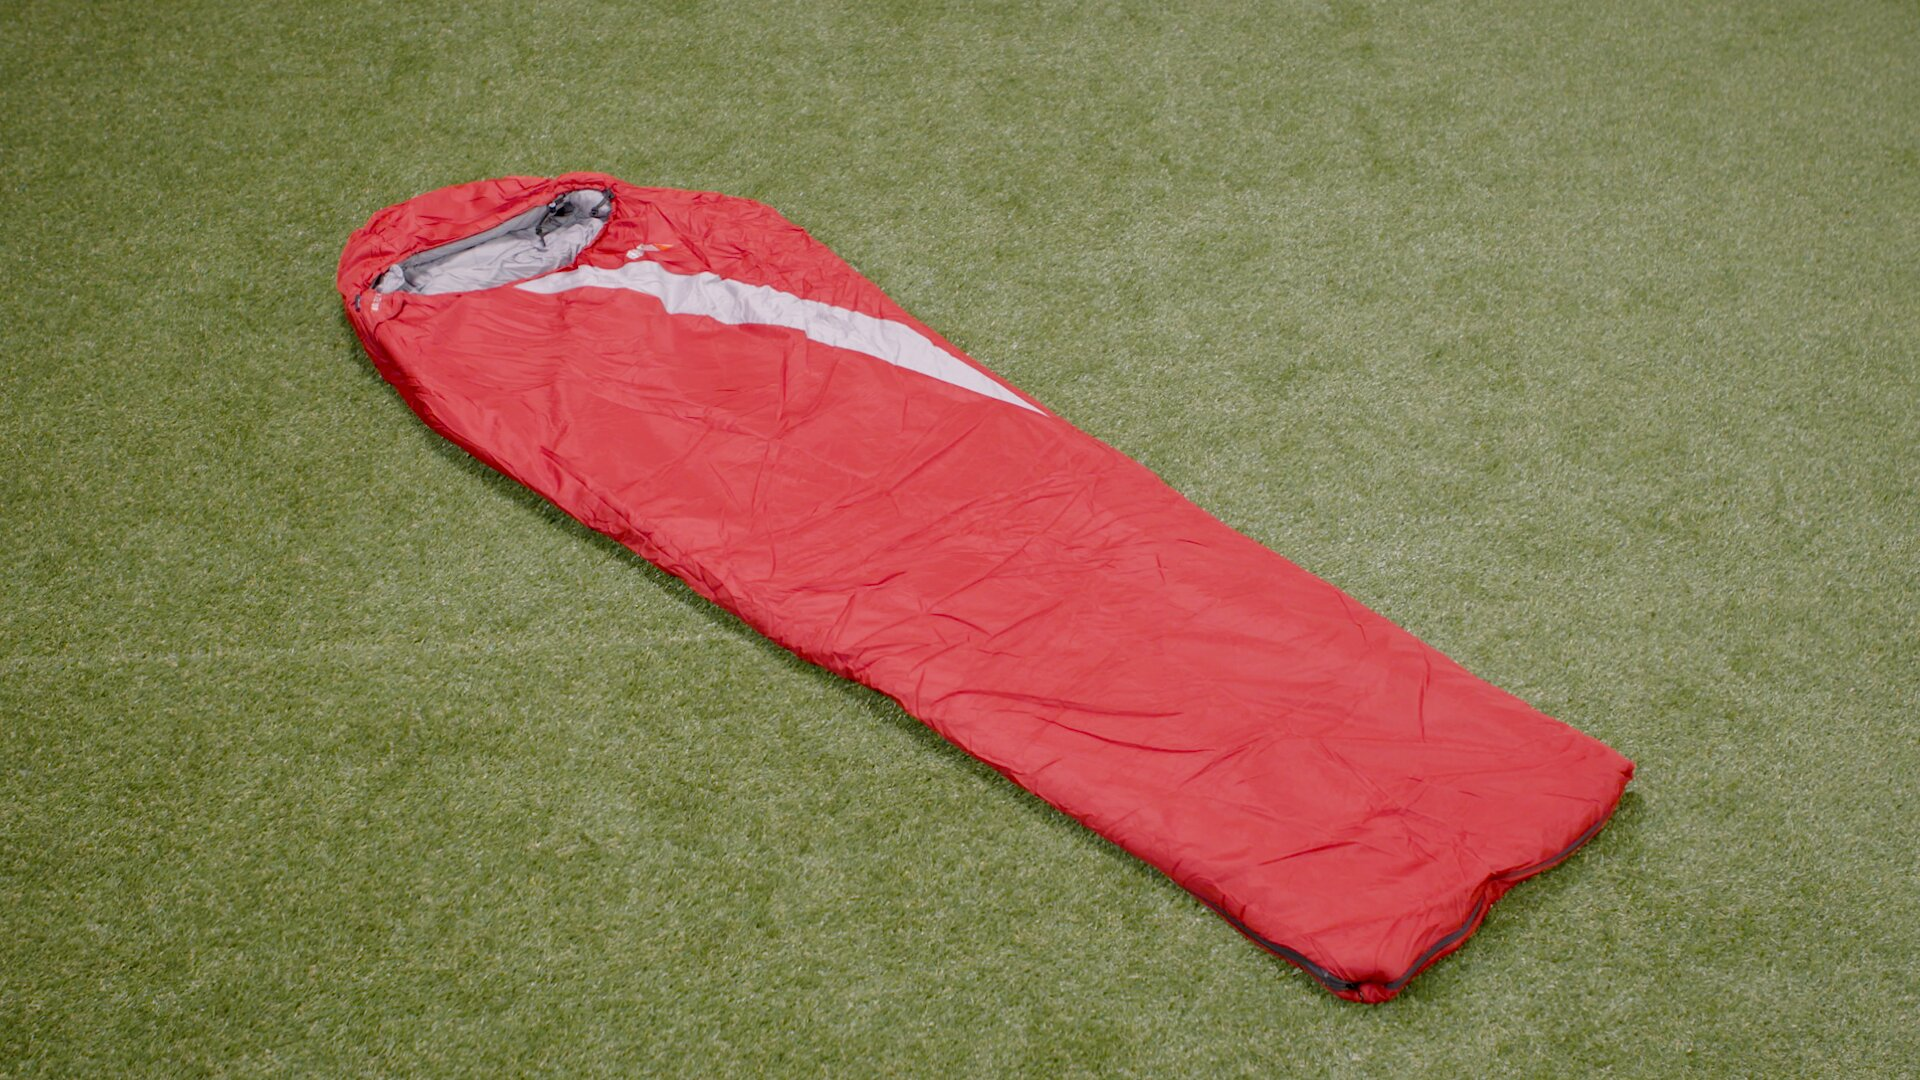 How To Choose A Sleeping Bag - Mummy